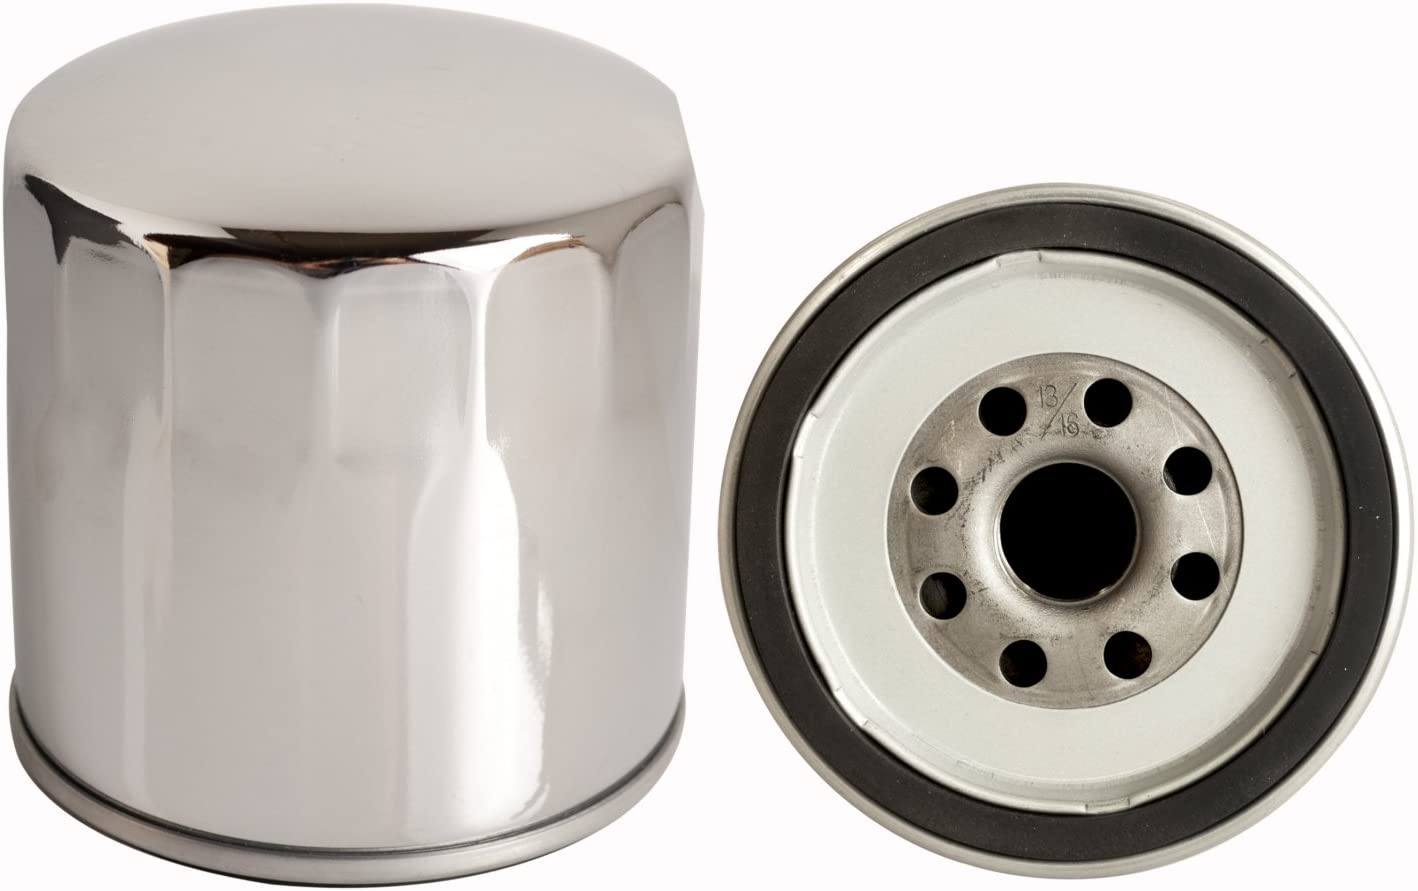 SIERRA Oil Max 84% New Shipping Free Shipping OFF Filter Chrome 18-7824C